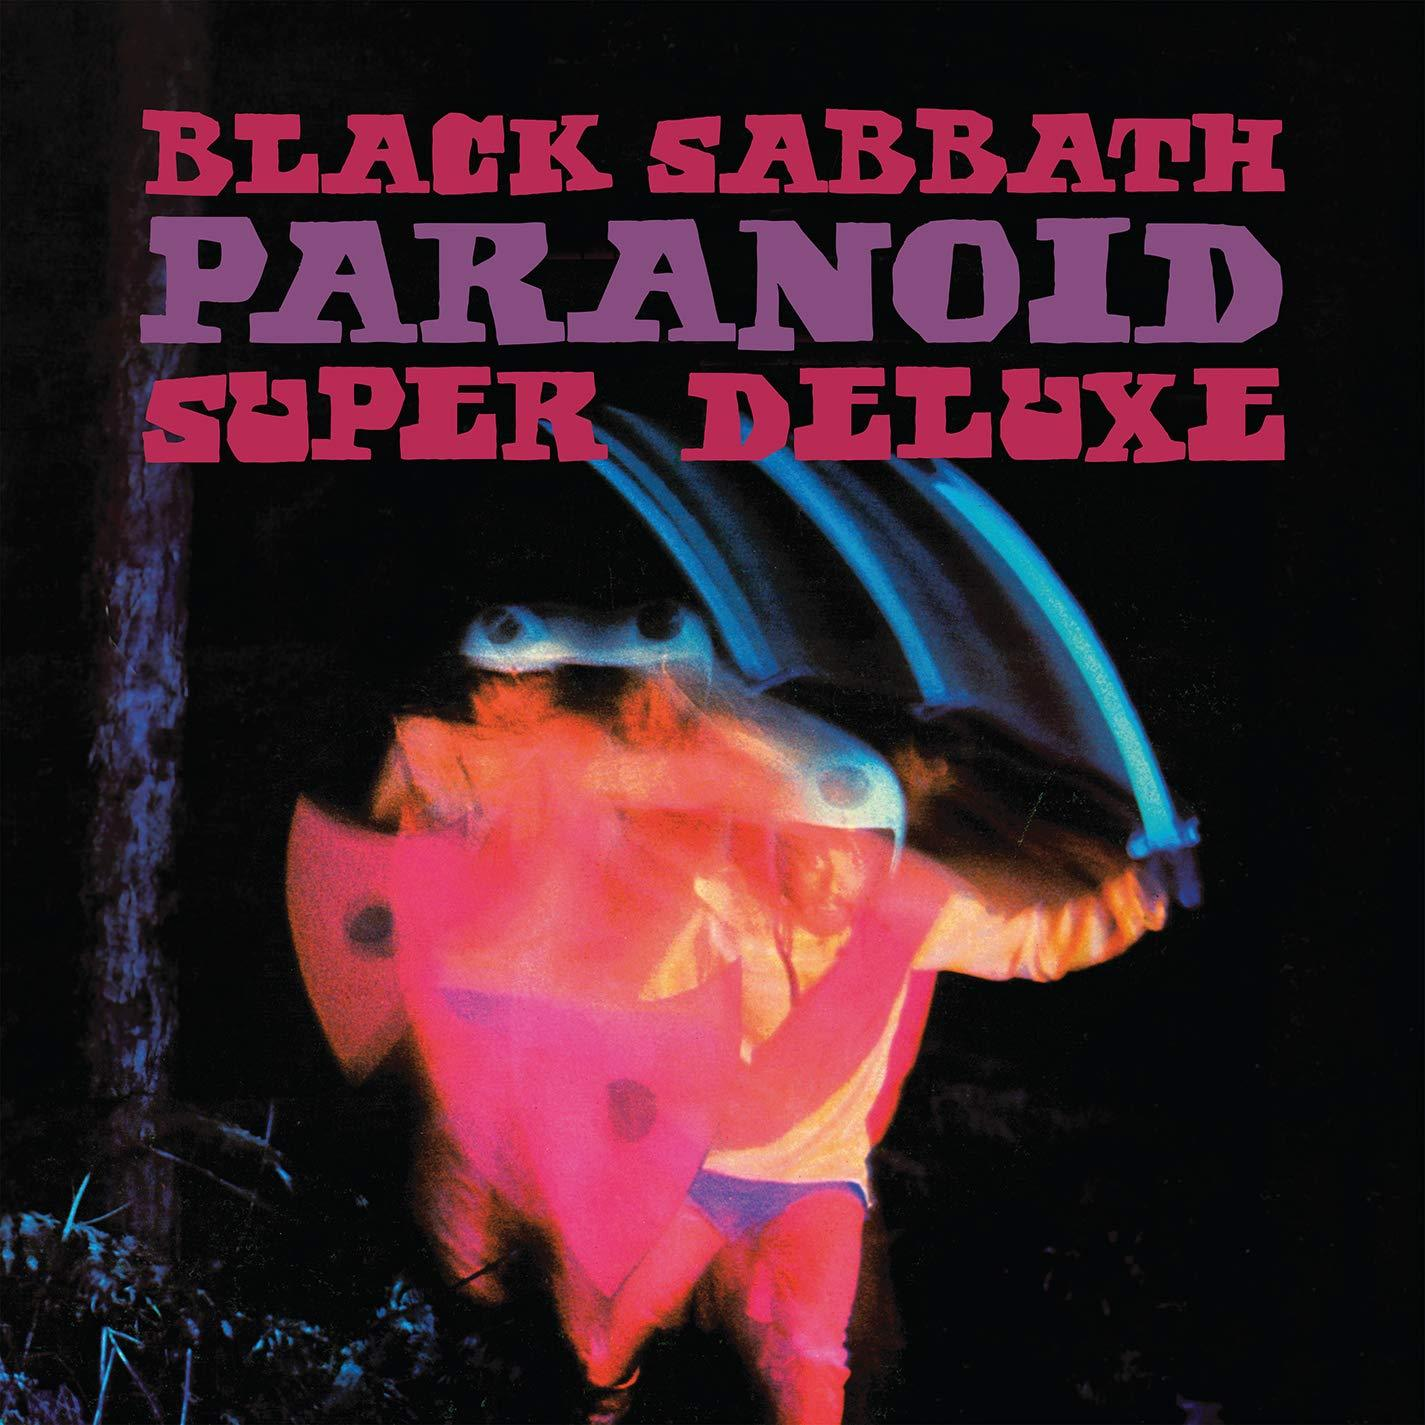 Black Sabbath - Paranoid (Super Deluxe Edition) [5LP] (2 concerts from 1970 that are first time on vinyl, hardbound book, poster, tourbook replica, limited)